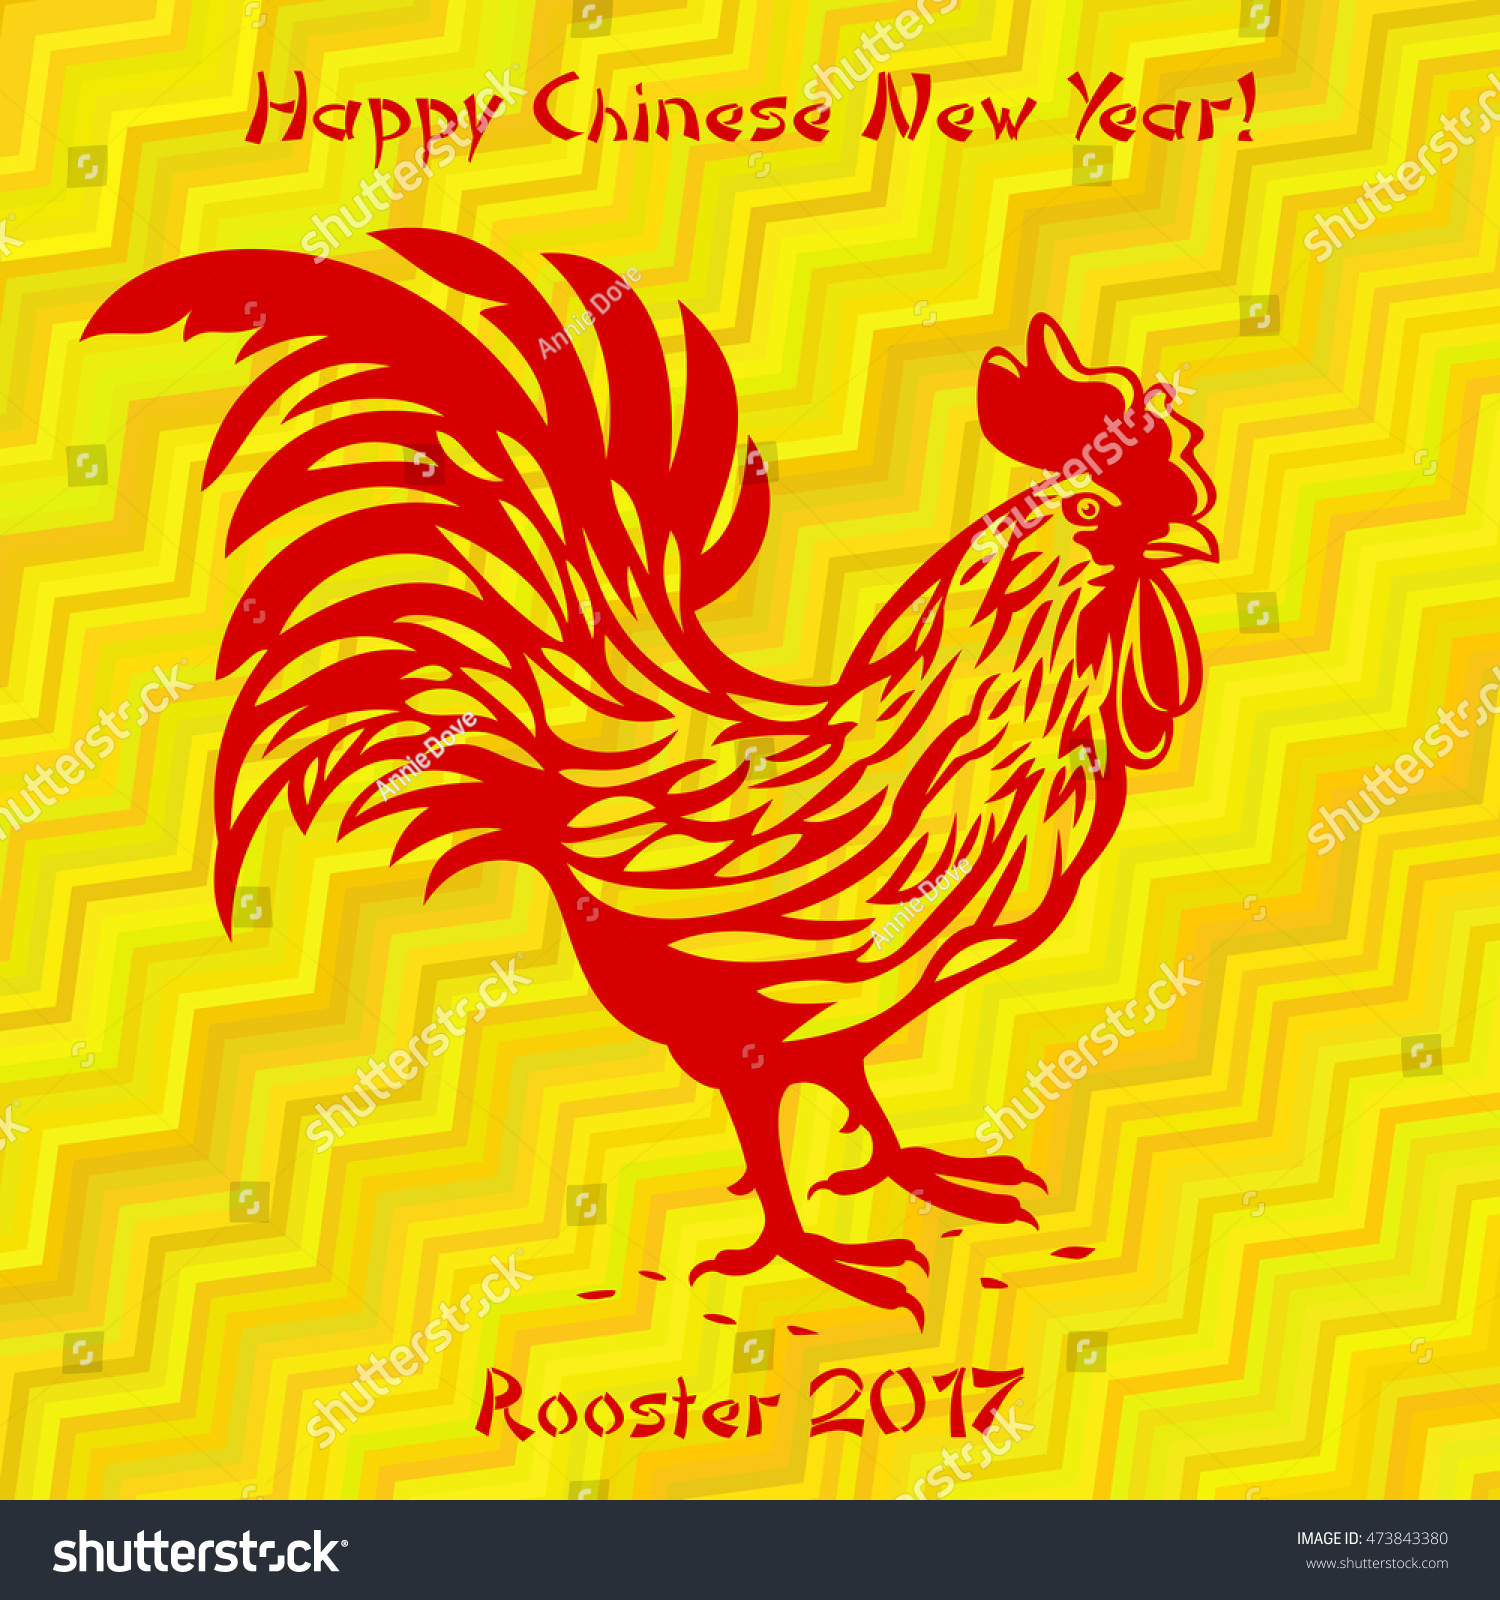 Vector color illustration red rooster text stock vector 473843380 vector color illustration with red rooster and text happy chinese new year on the gold background biocorpaavc